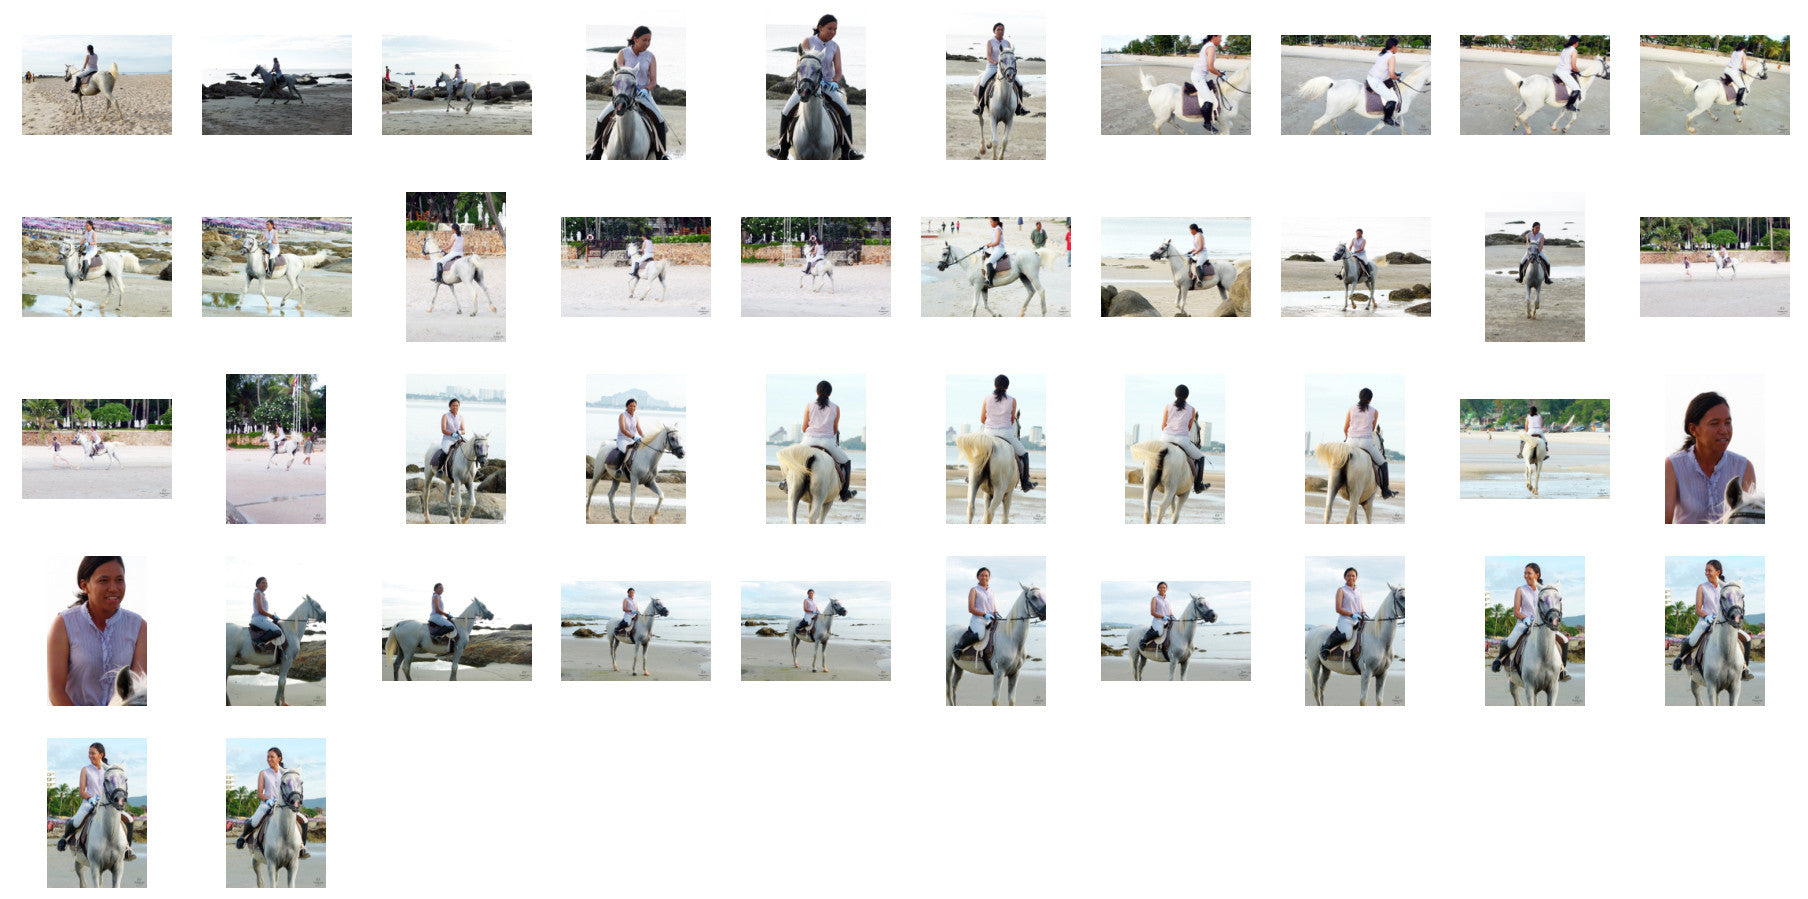 Nam in Jodhpurs Riding with Saddle on White Arabian Horse, Part 3 - Riding.Vision